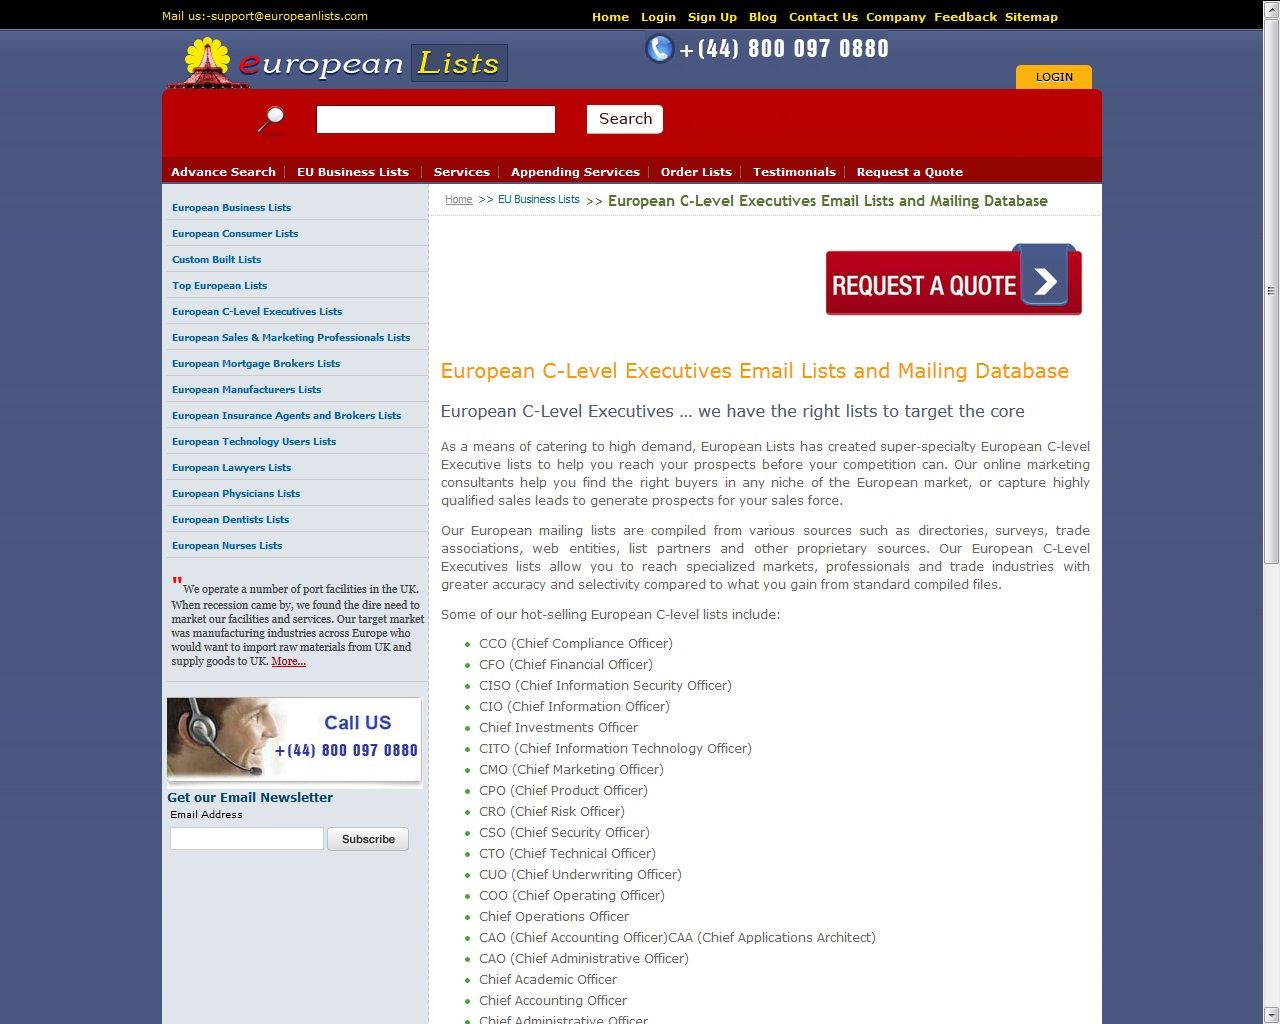 Free list of email addresses - European Lists Provides You The Error Free Email Address Of C Level Executives To Have